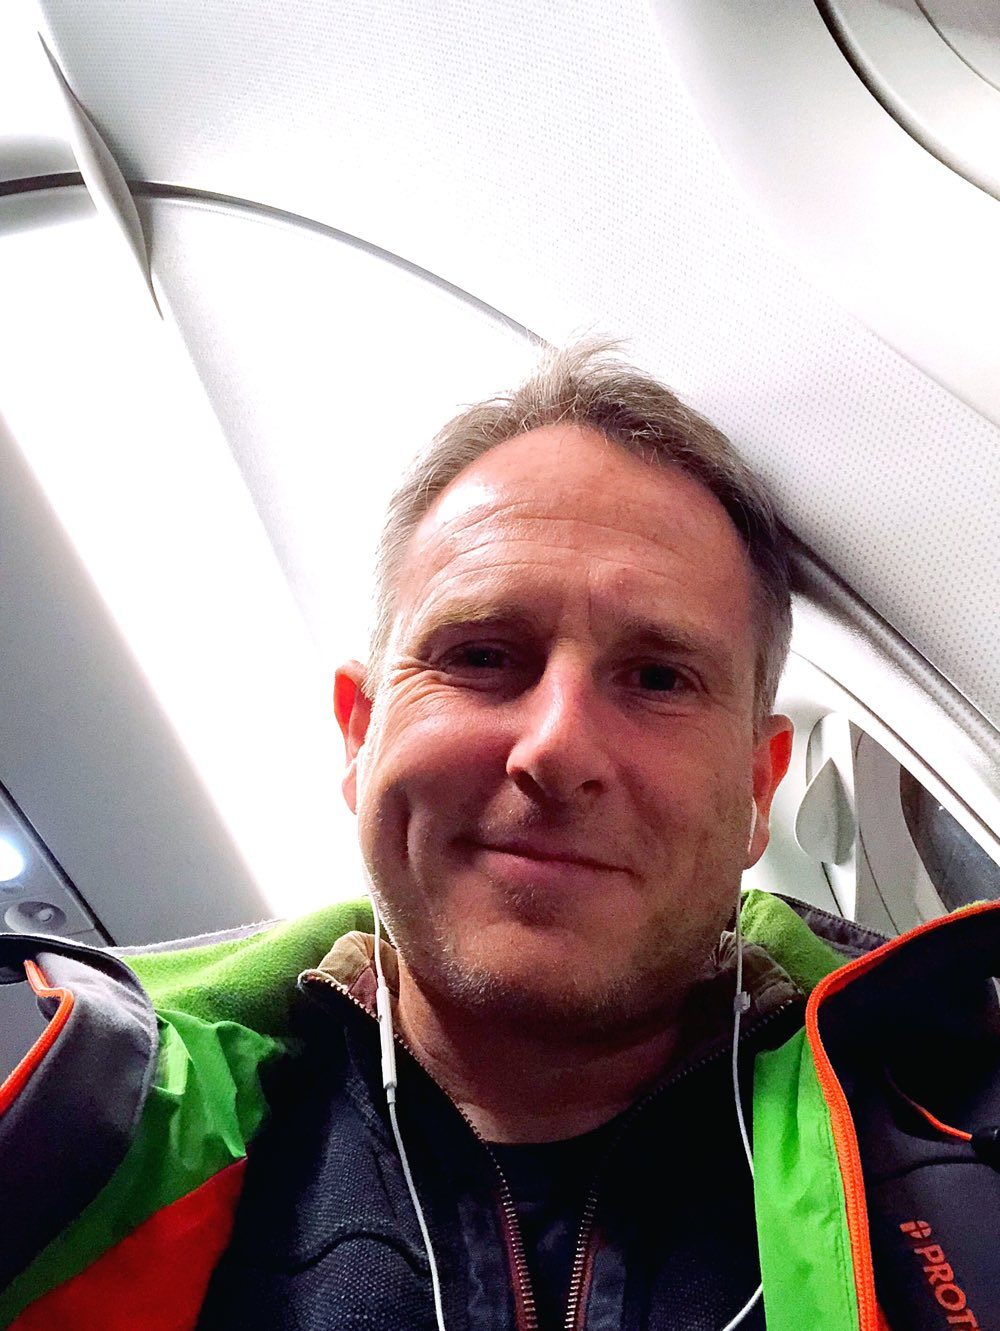 Selfie of Martin Sutherland in seat 2A on EasyJet flight 6924 from Amsterdam to Edinburgh